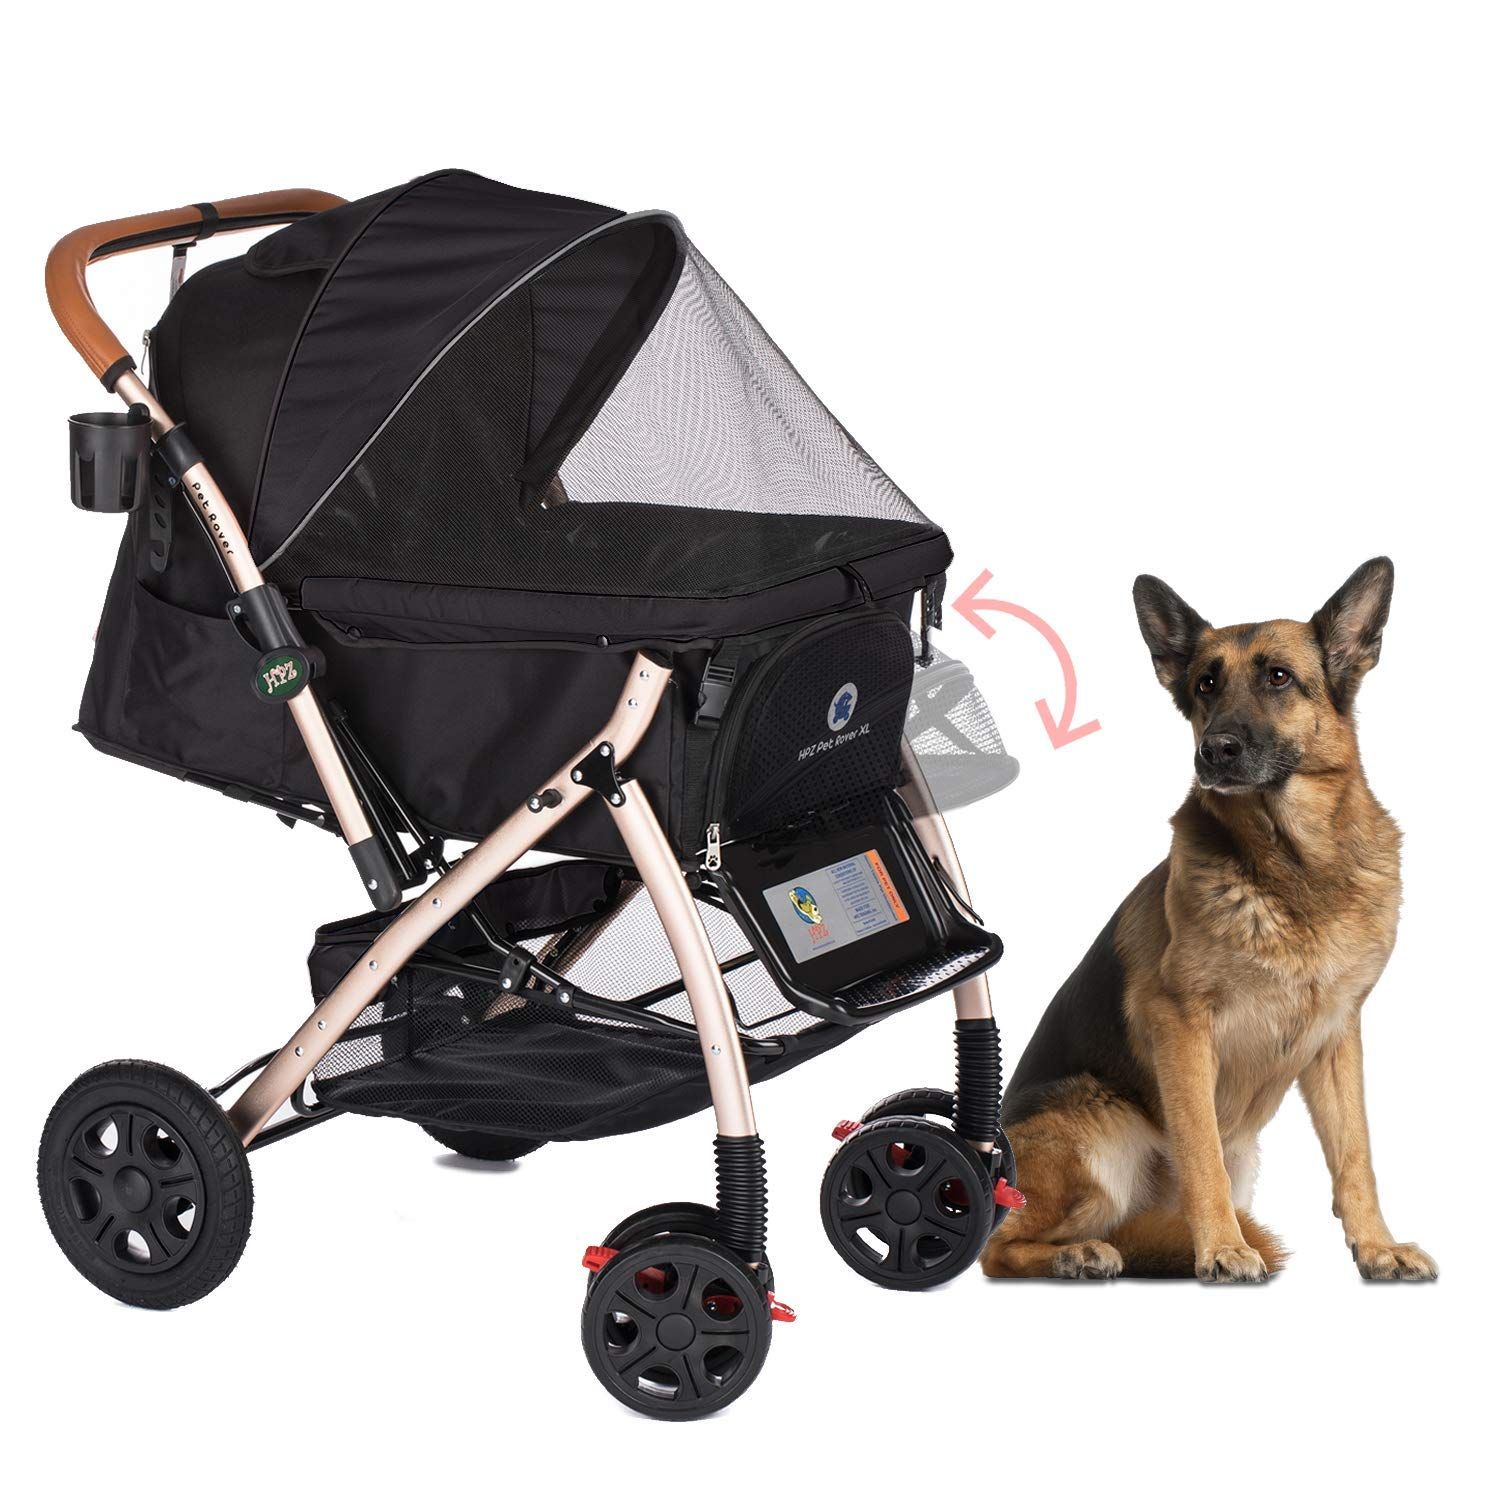 7 Best Dog strollers for Small, Medium and Large Dogs 7